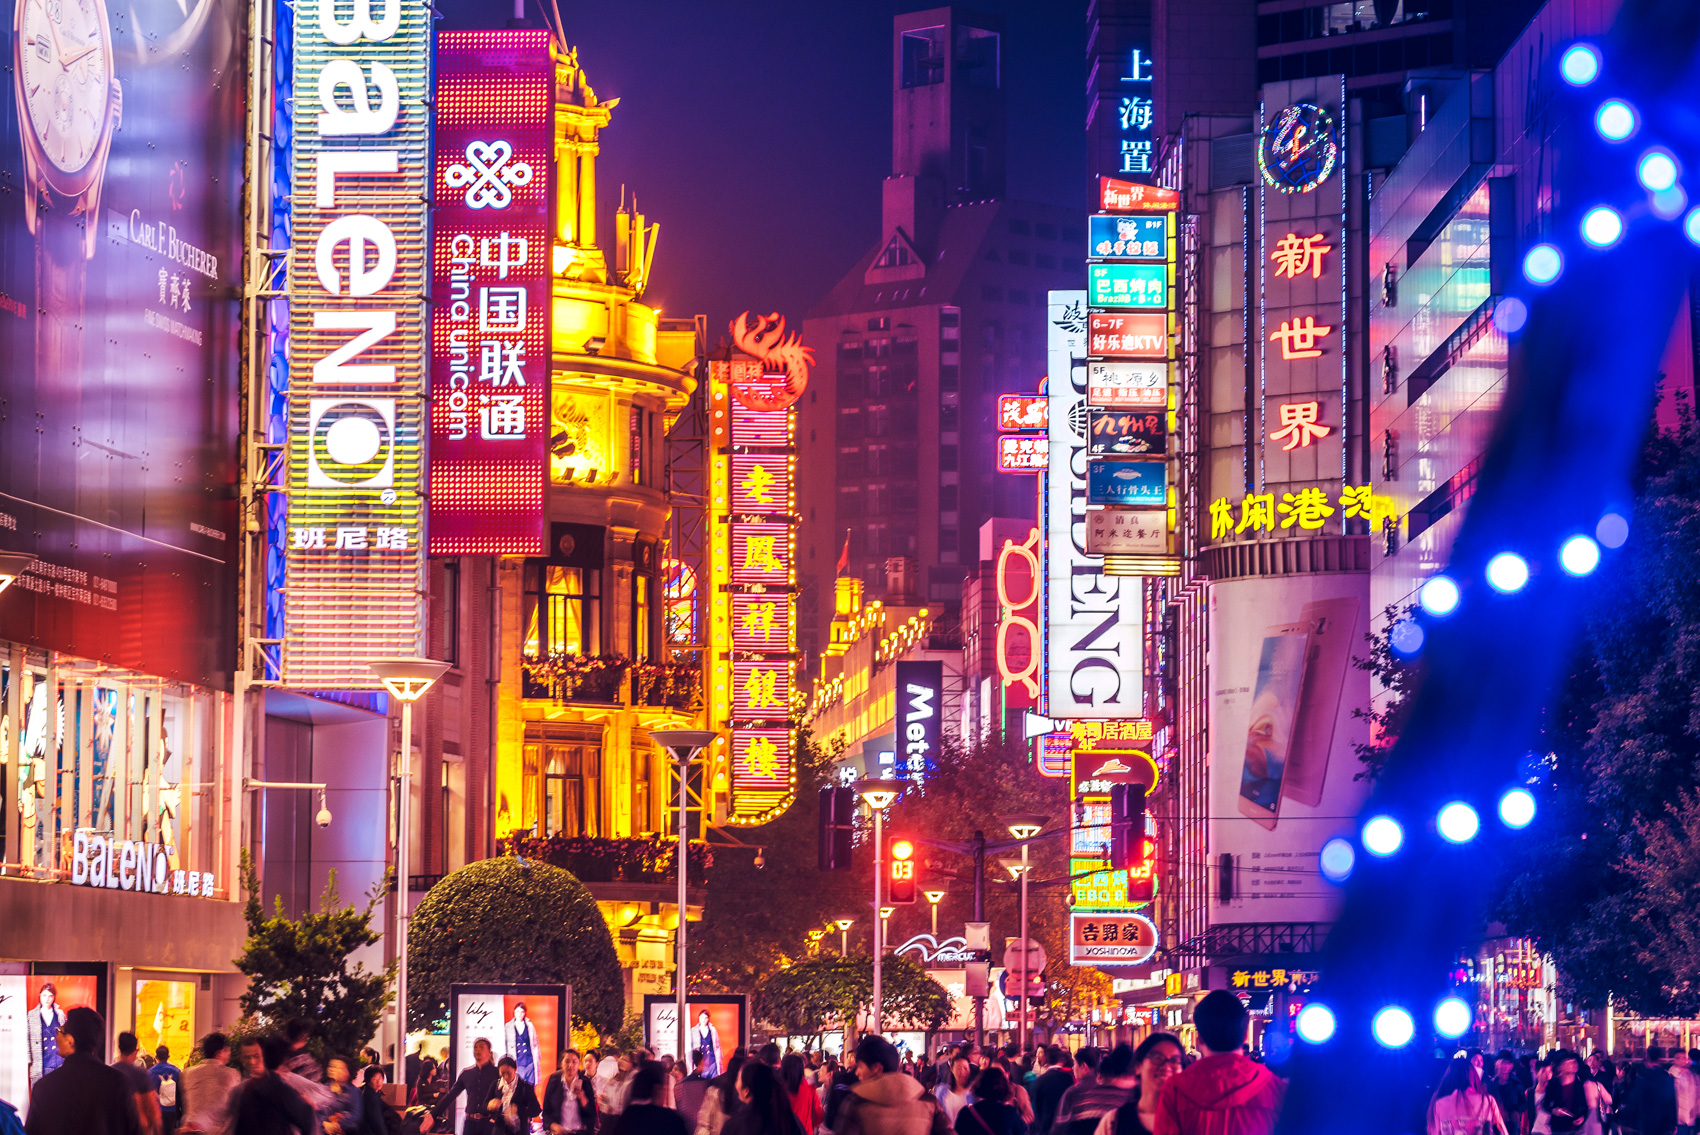 Work in China | Prospects ac uk